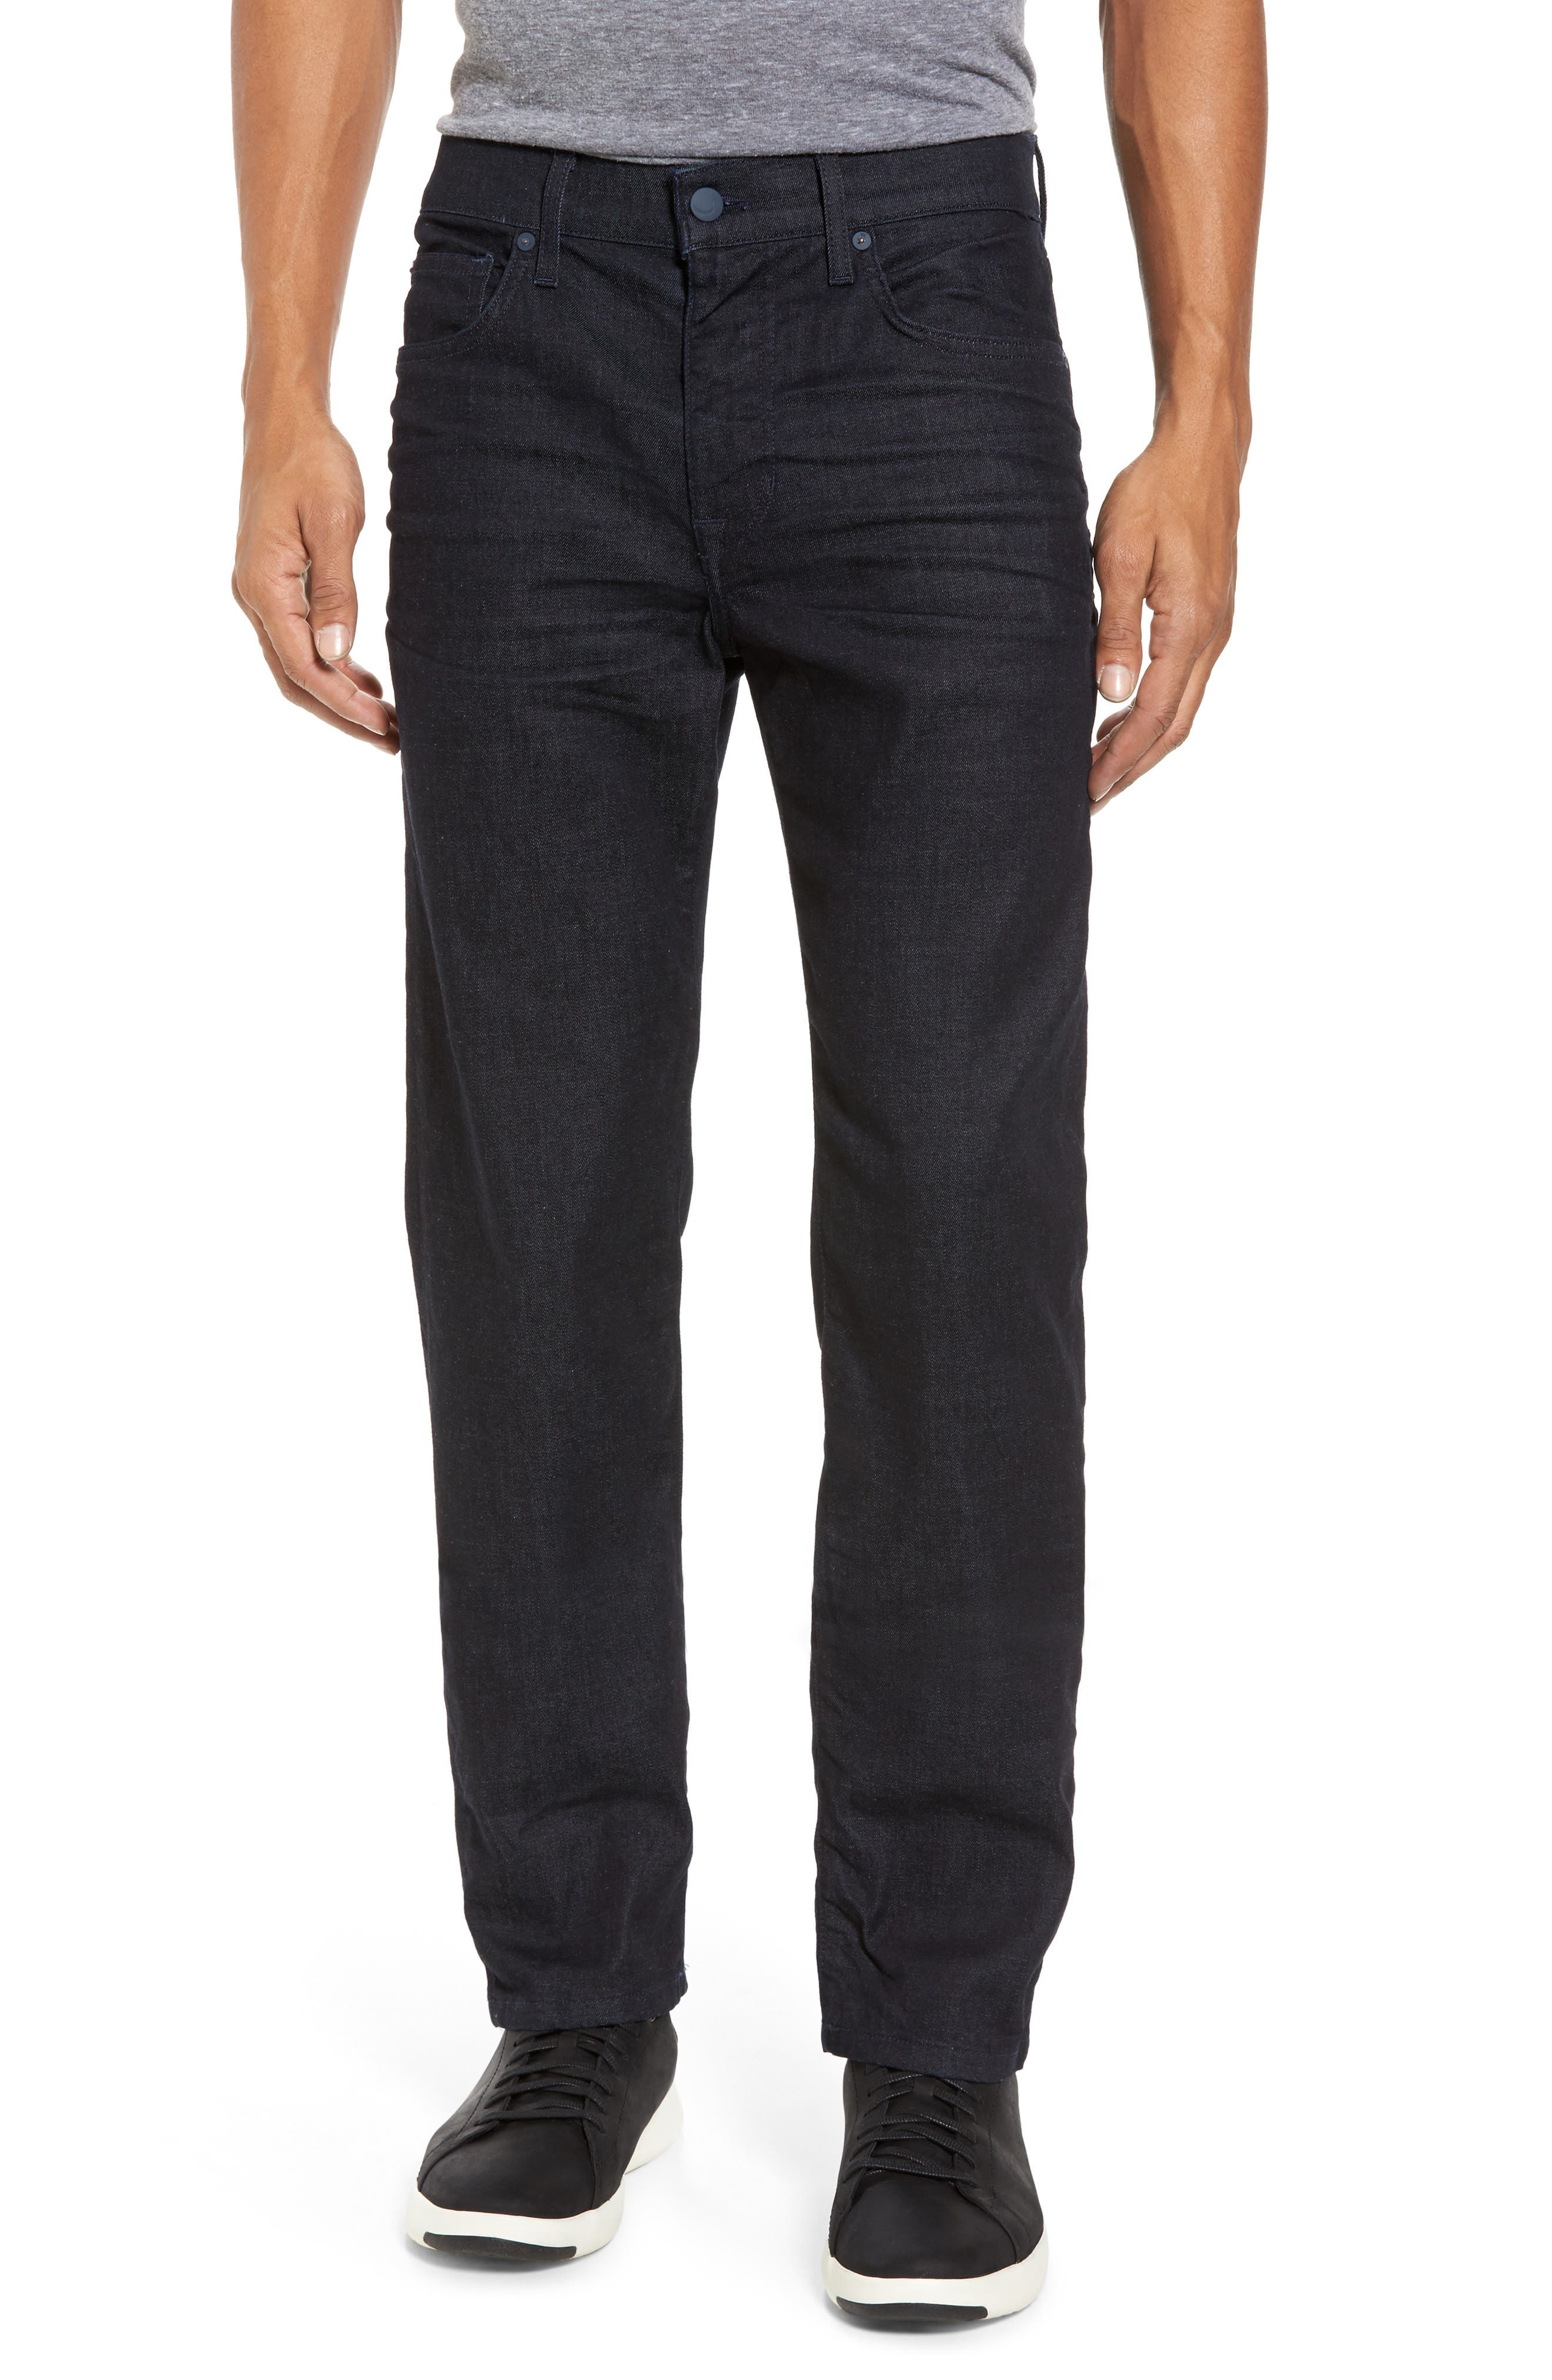 Brixton Slim Straight Fit Jeans,                             Main thumbnail 1, color,                             Foster